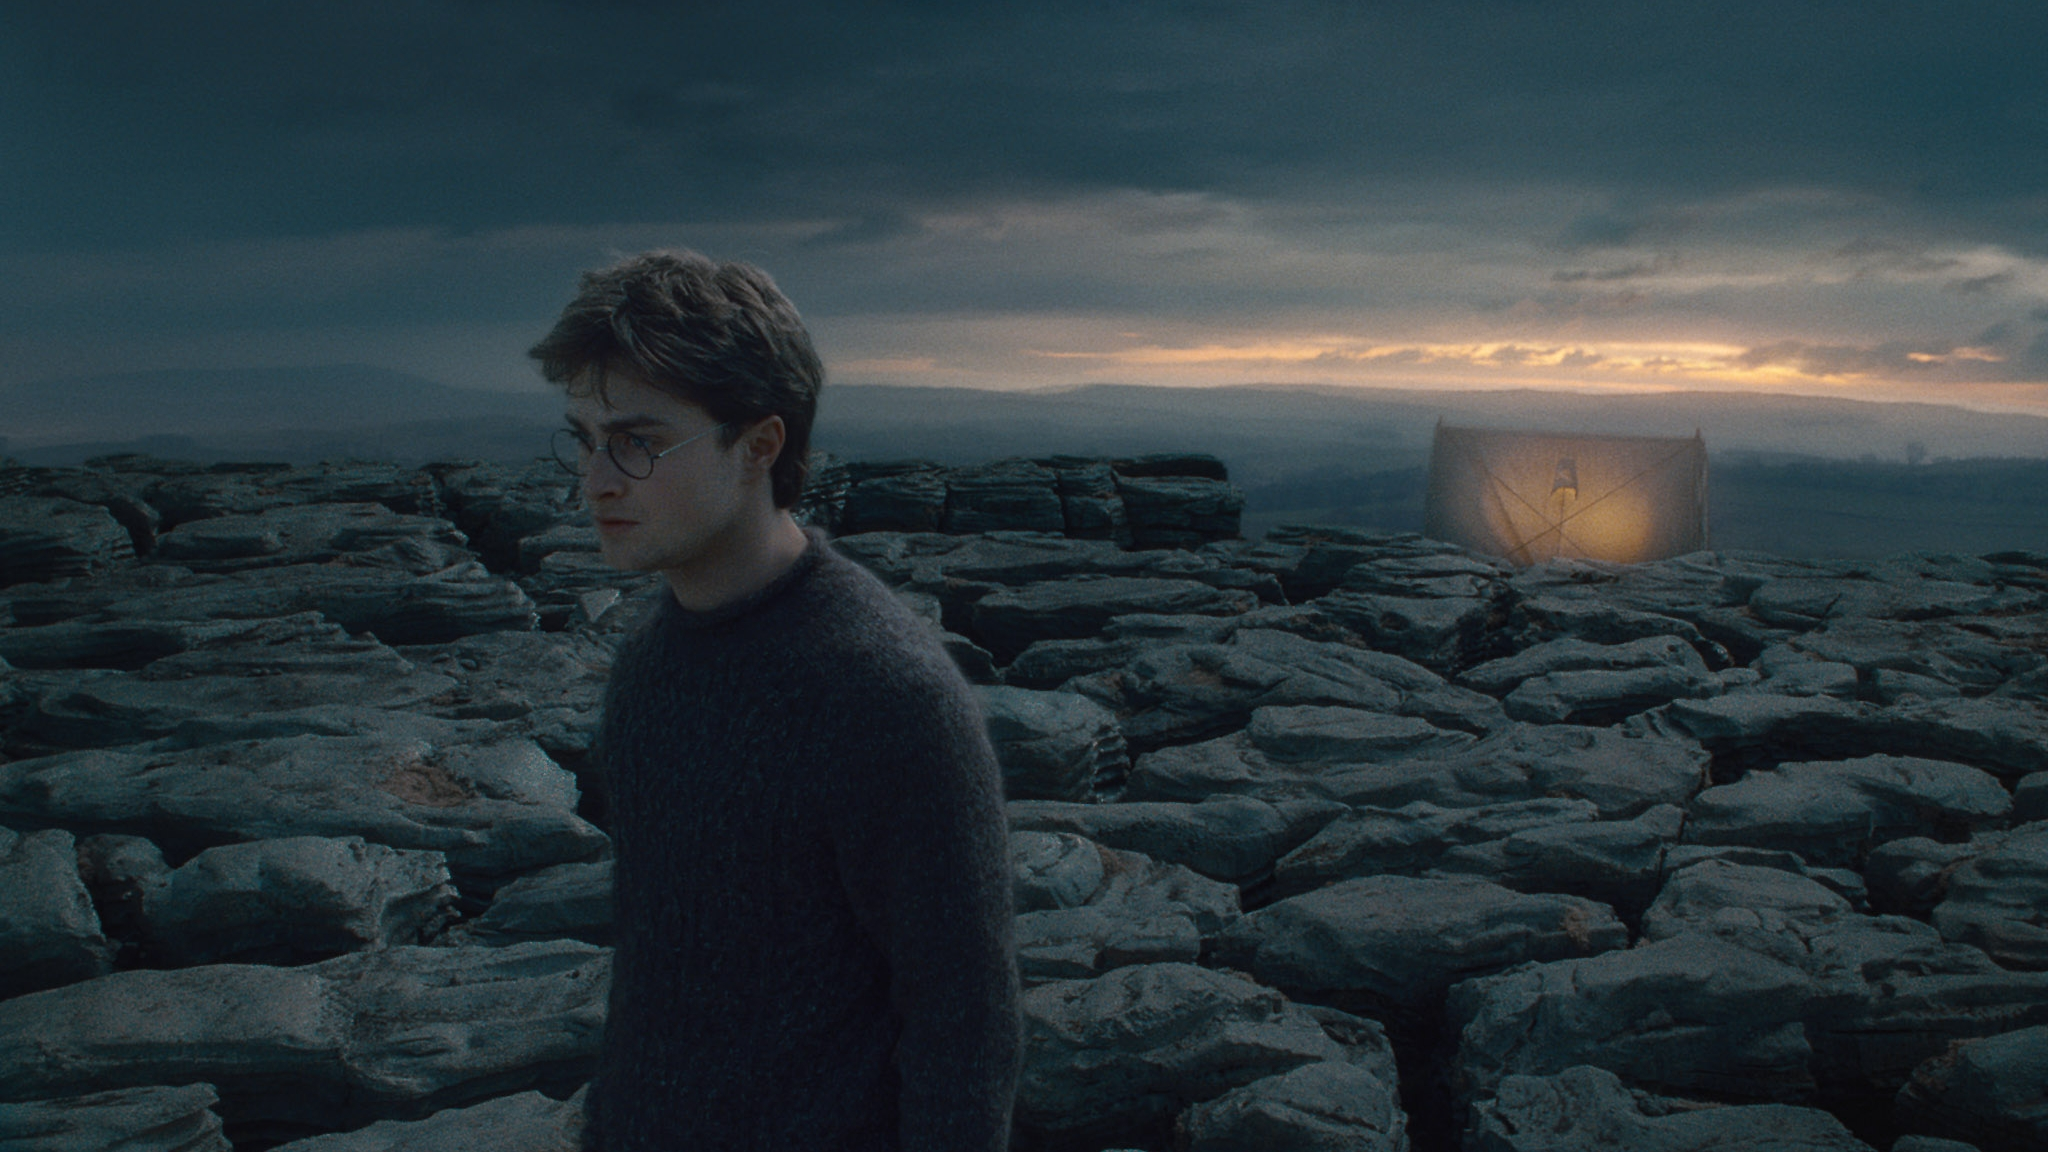 #67) Harry Potter and the Deathly Hallows - Part I - (2010 - dir. David Yates)